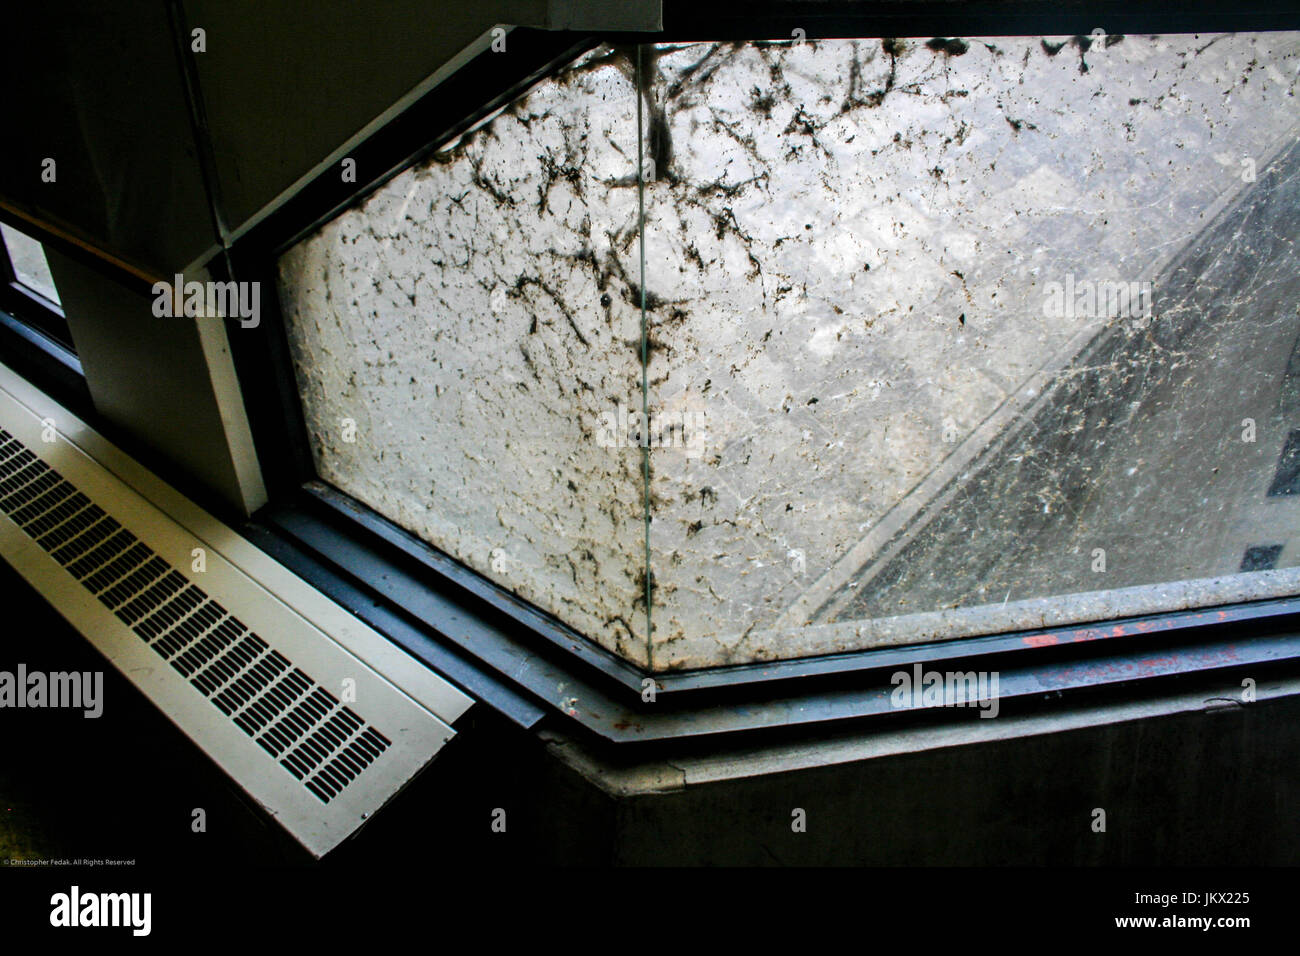 accumulated dust on a window needs cleaned badly. - Stock Image